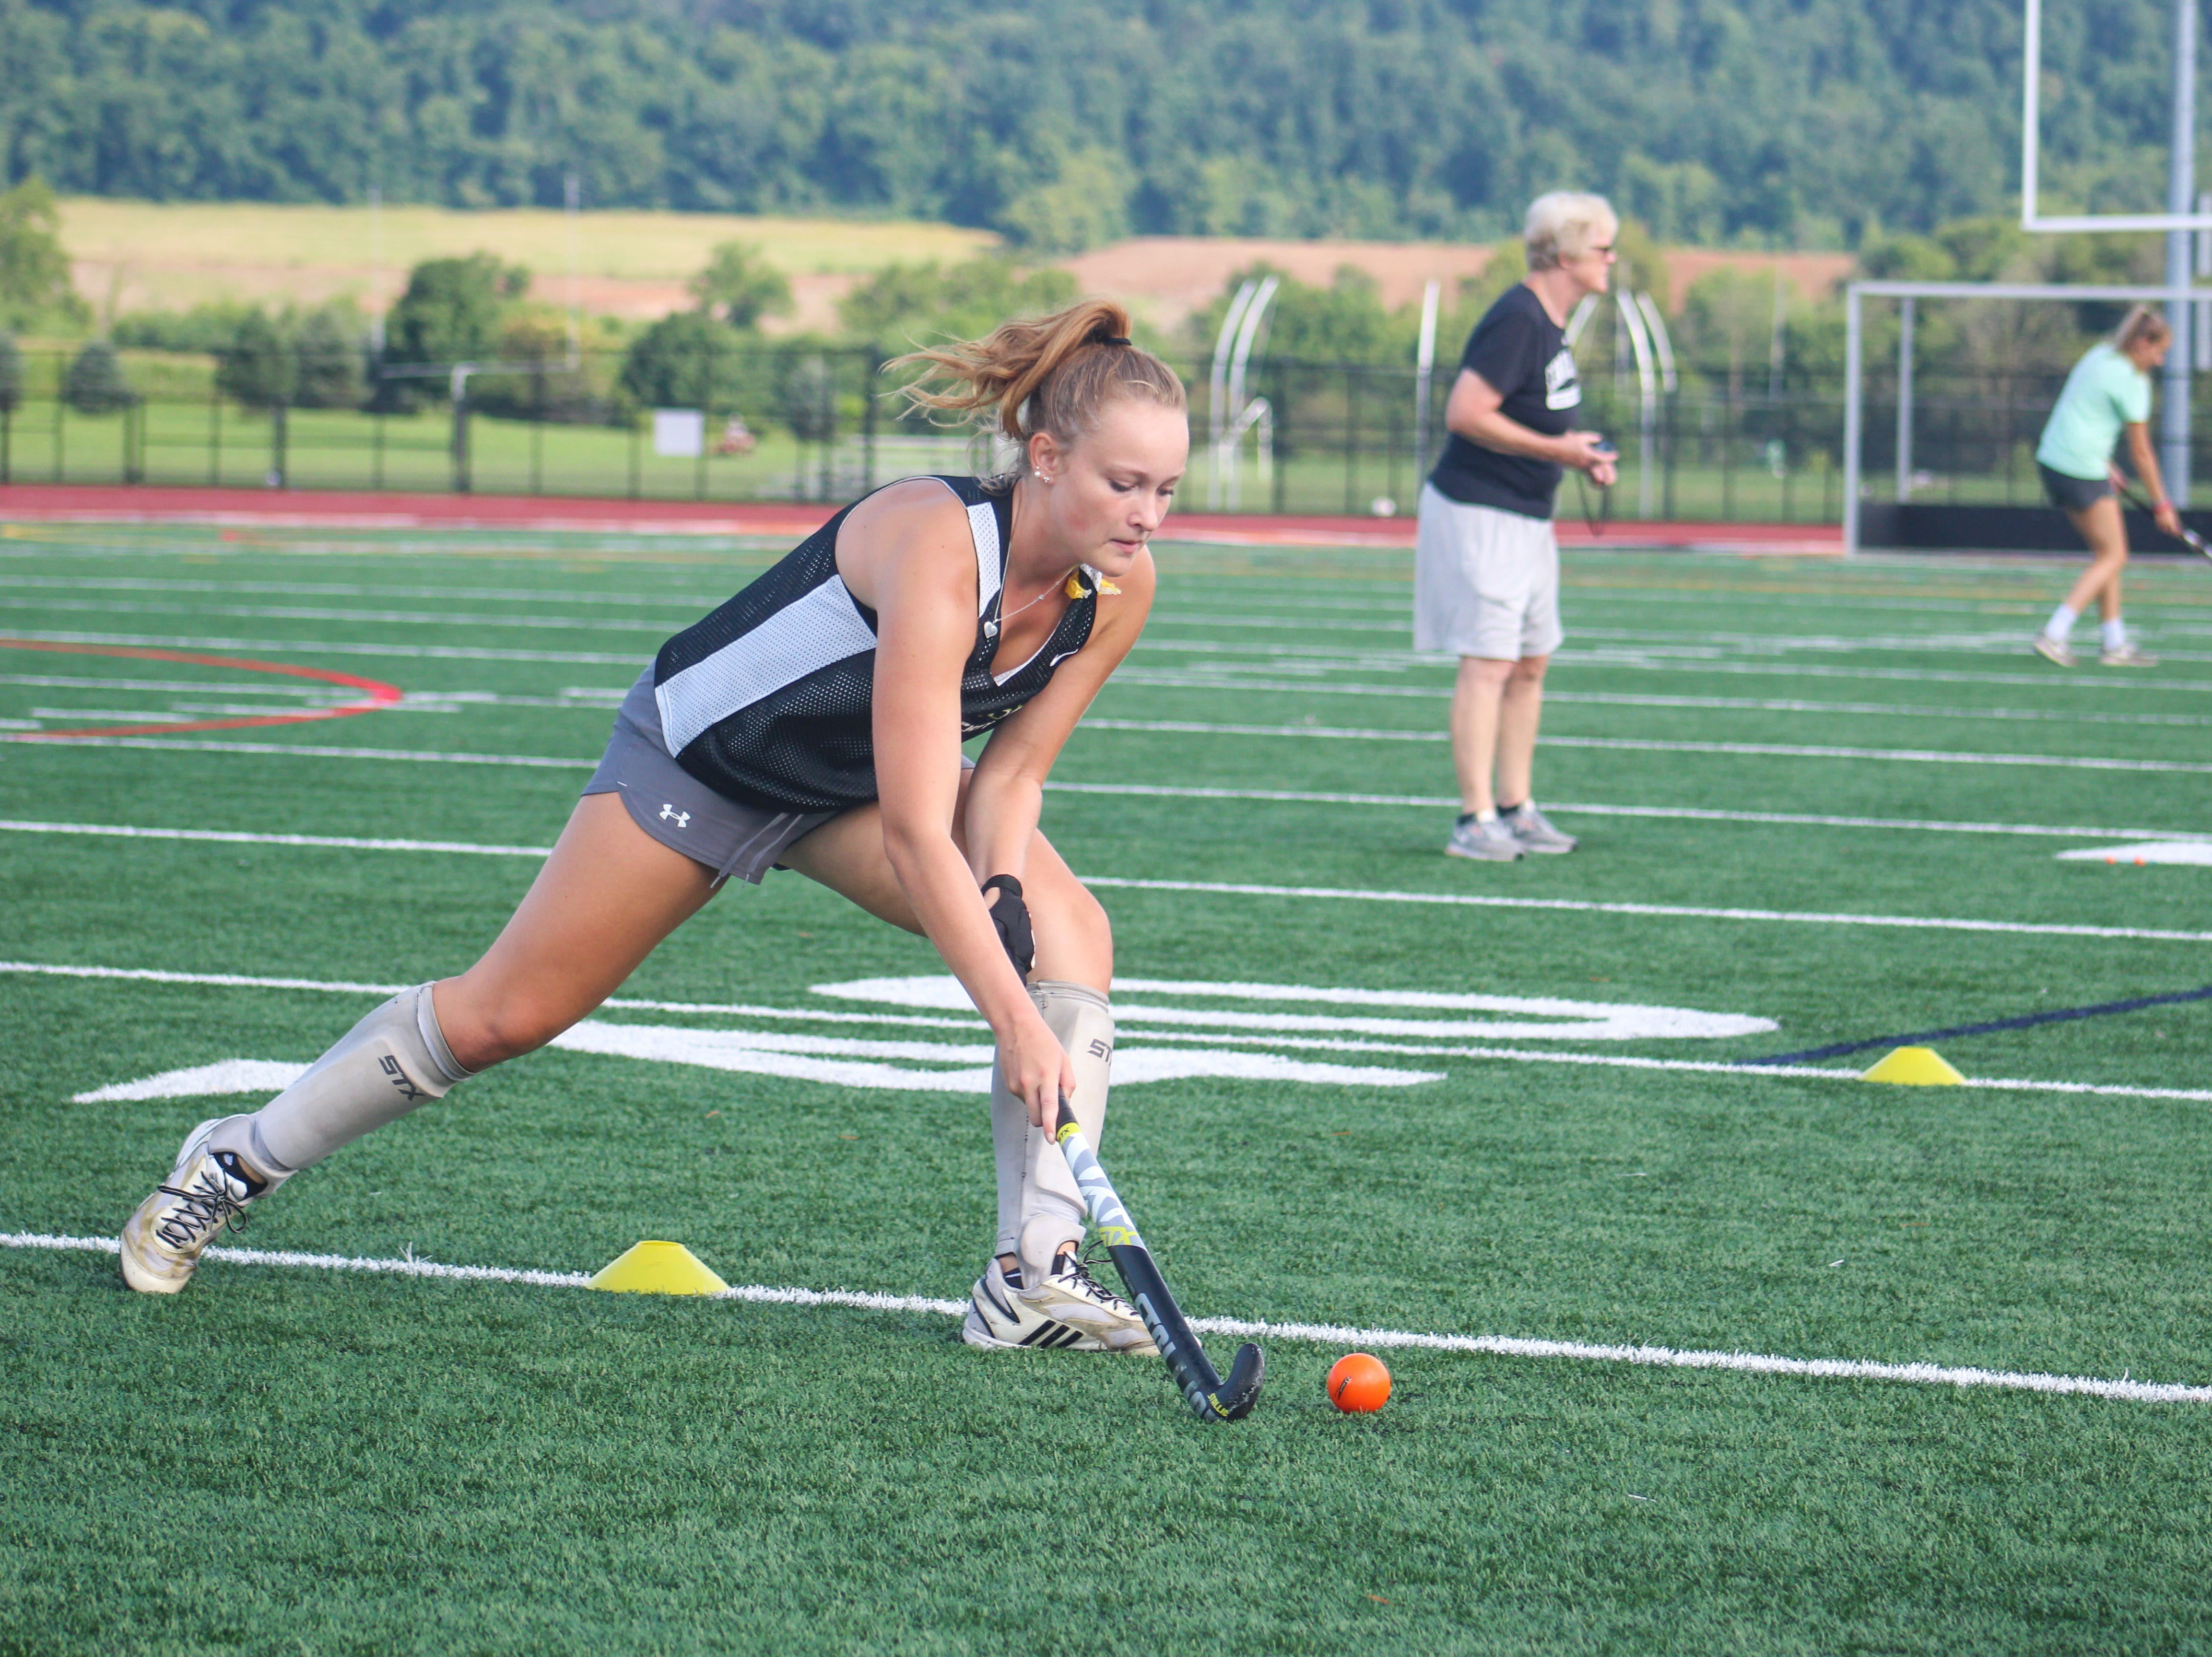 A Central York High School field hockey player makes a pass during practice.